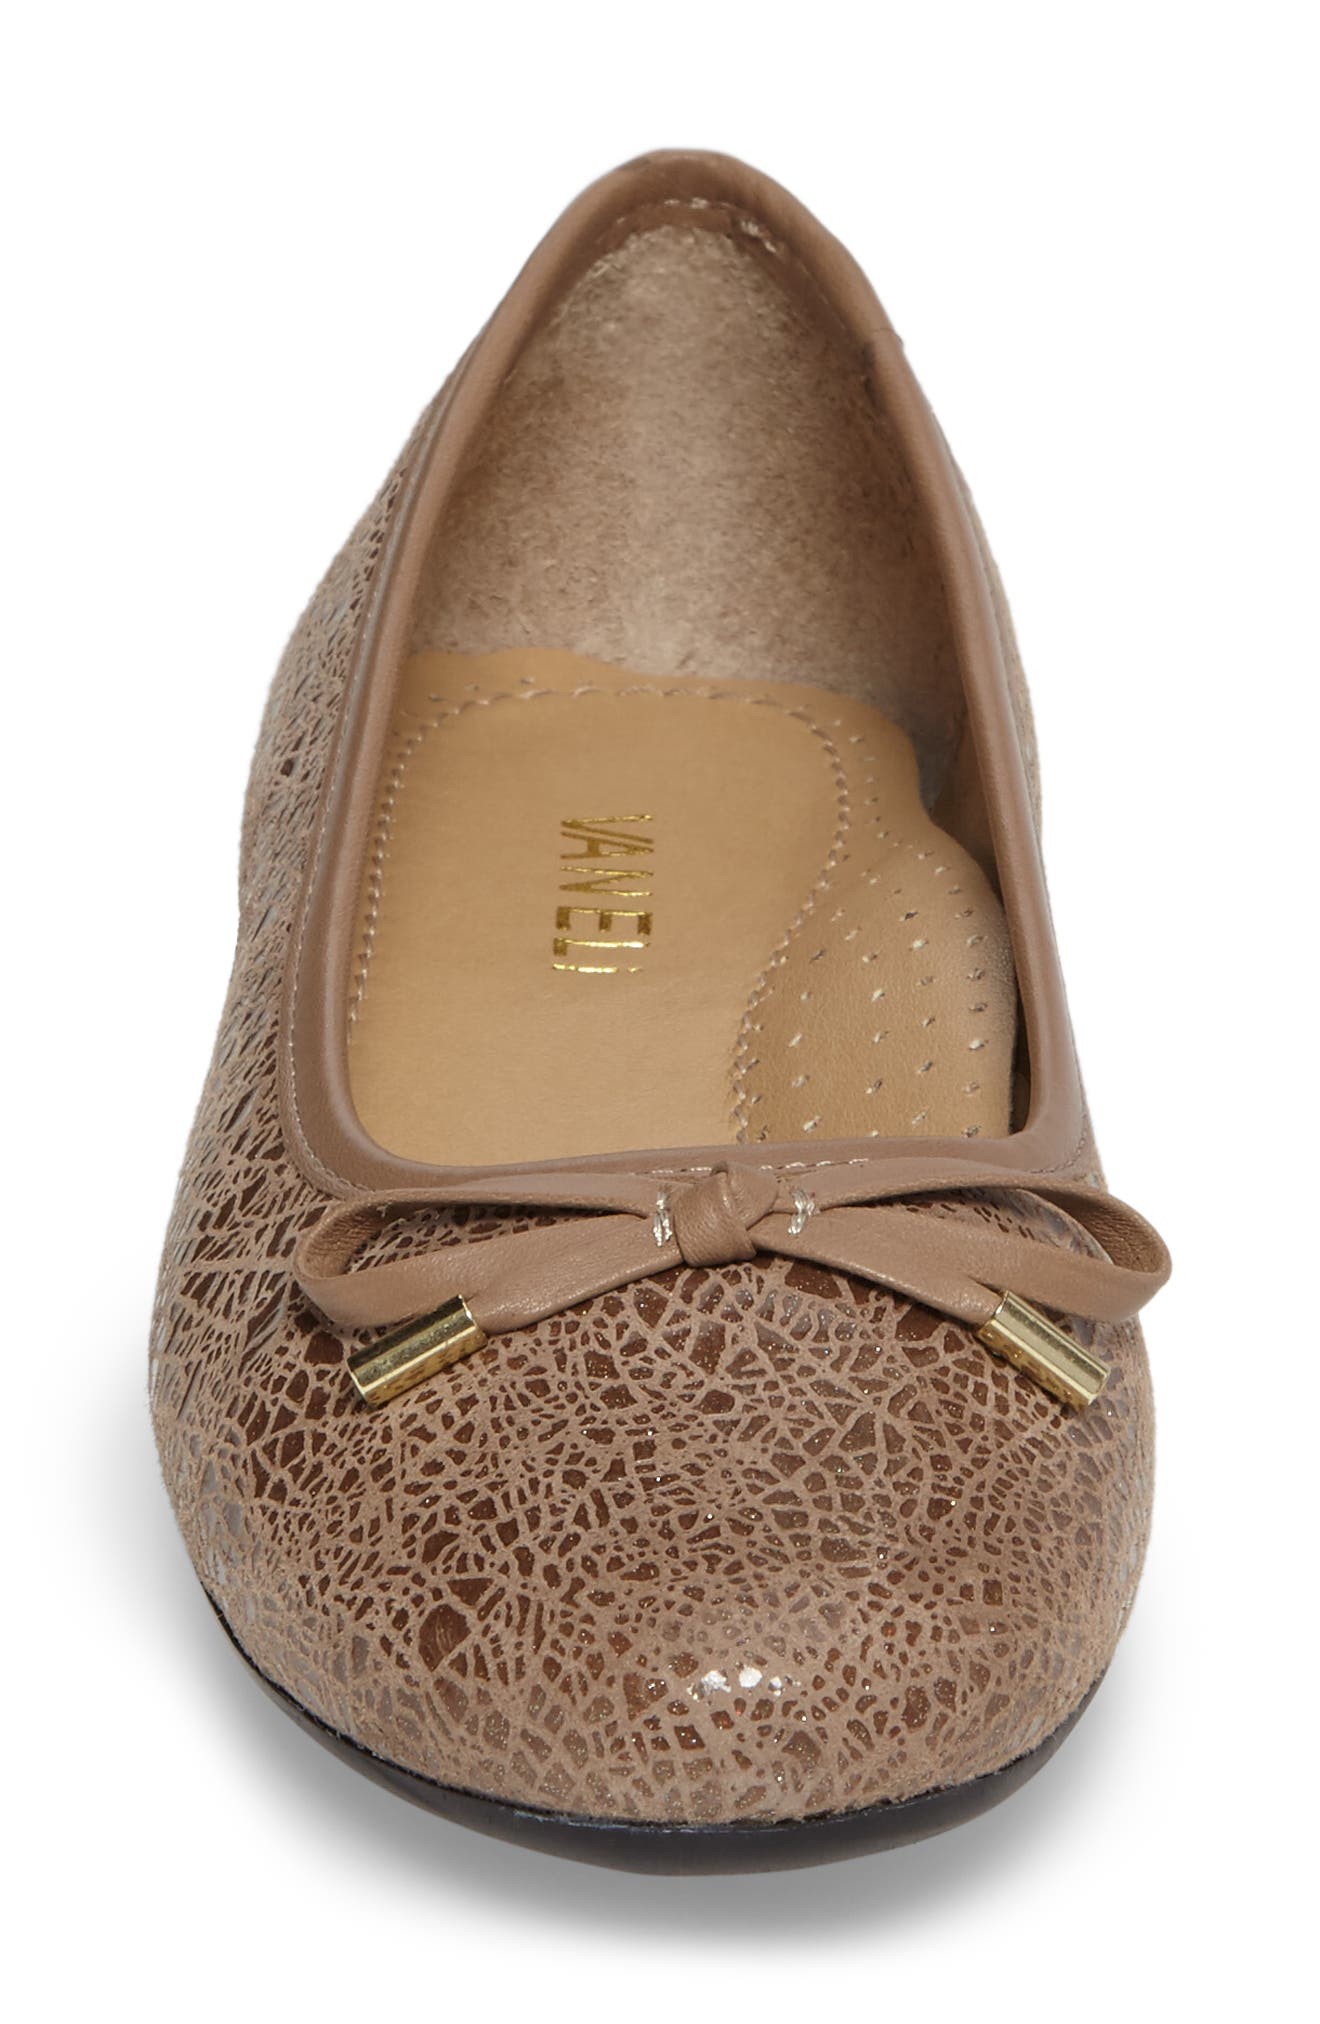 'Signy' Ballet Flat,                             Alternate thumbnail 3, color,                             Taupe Print Leather